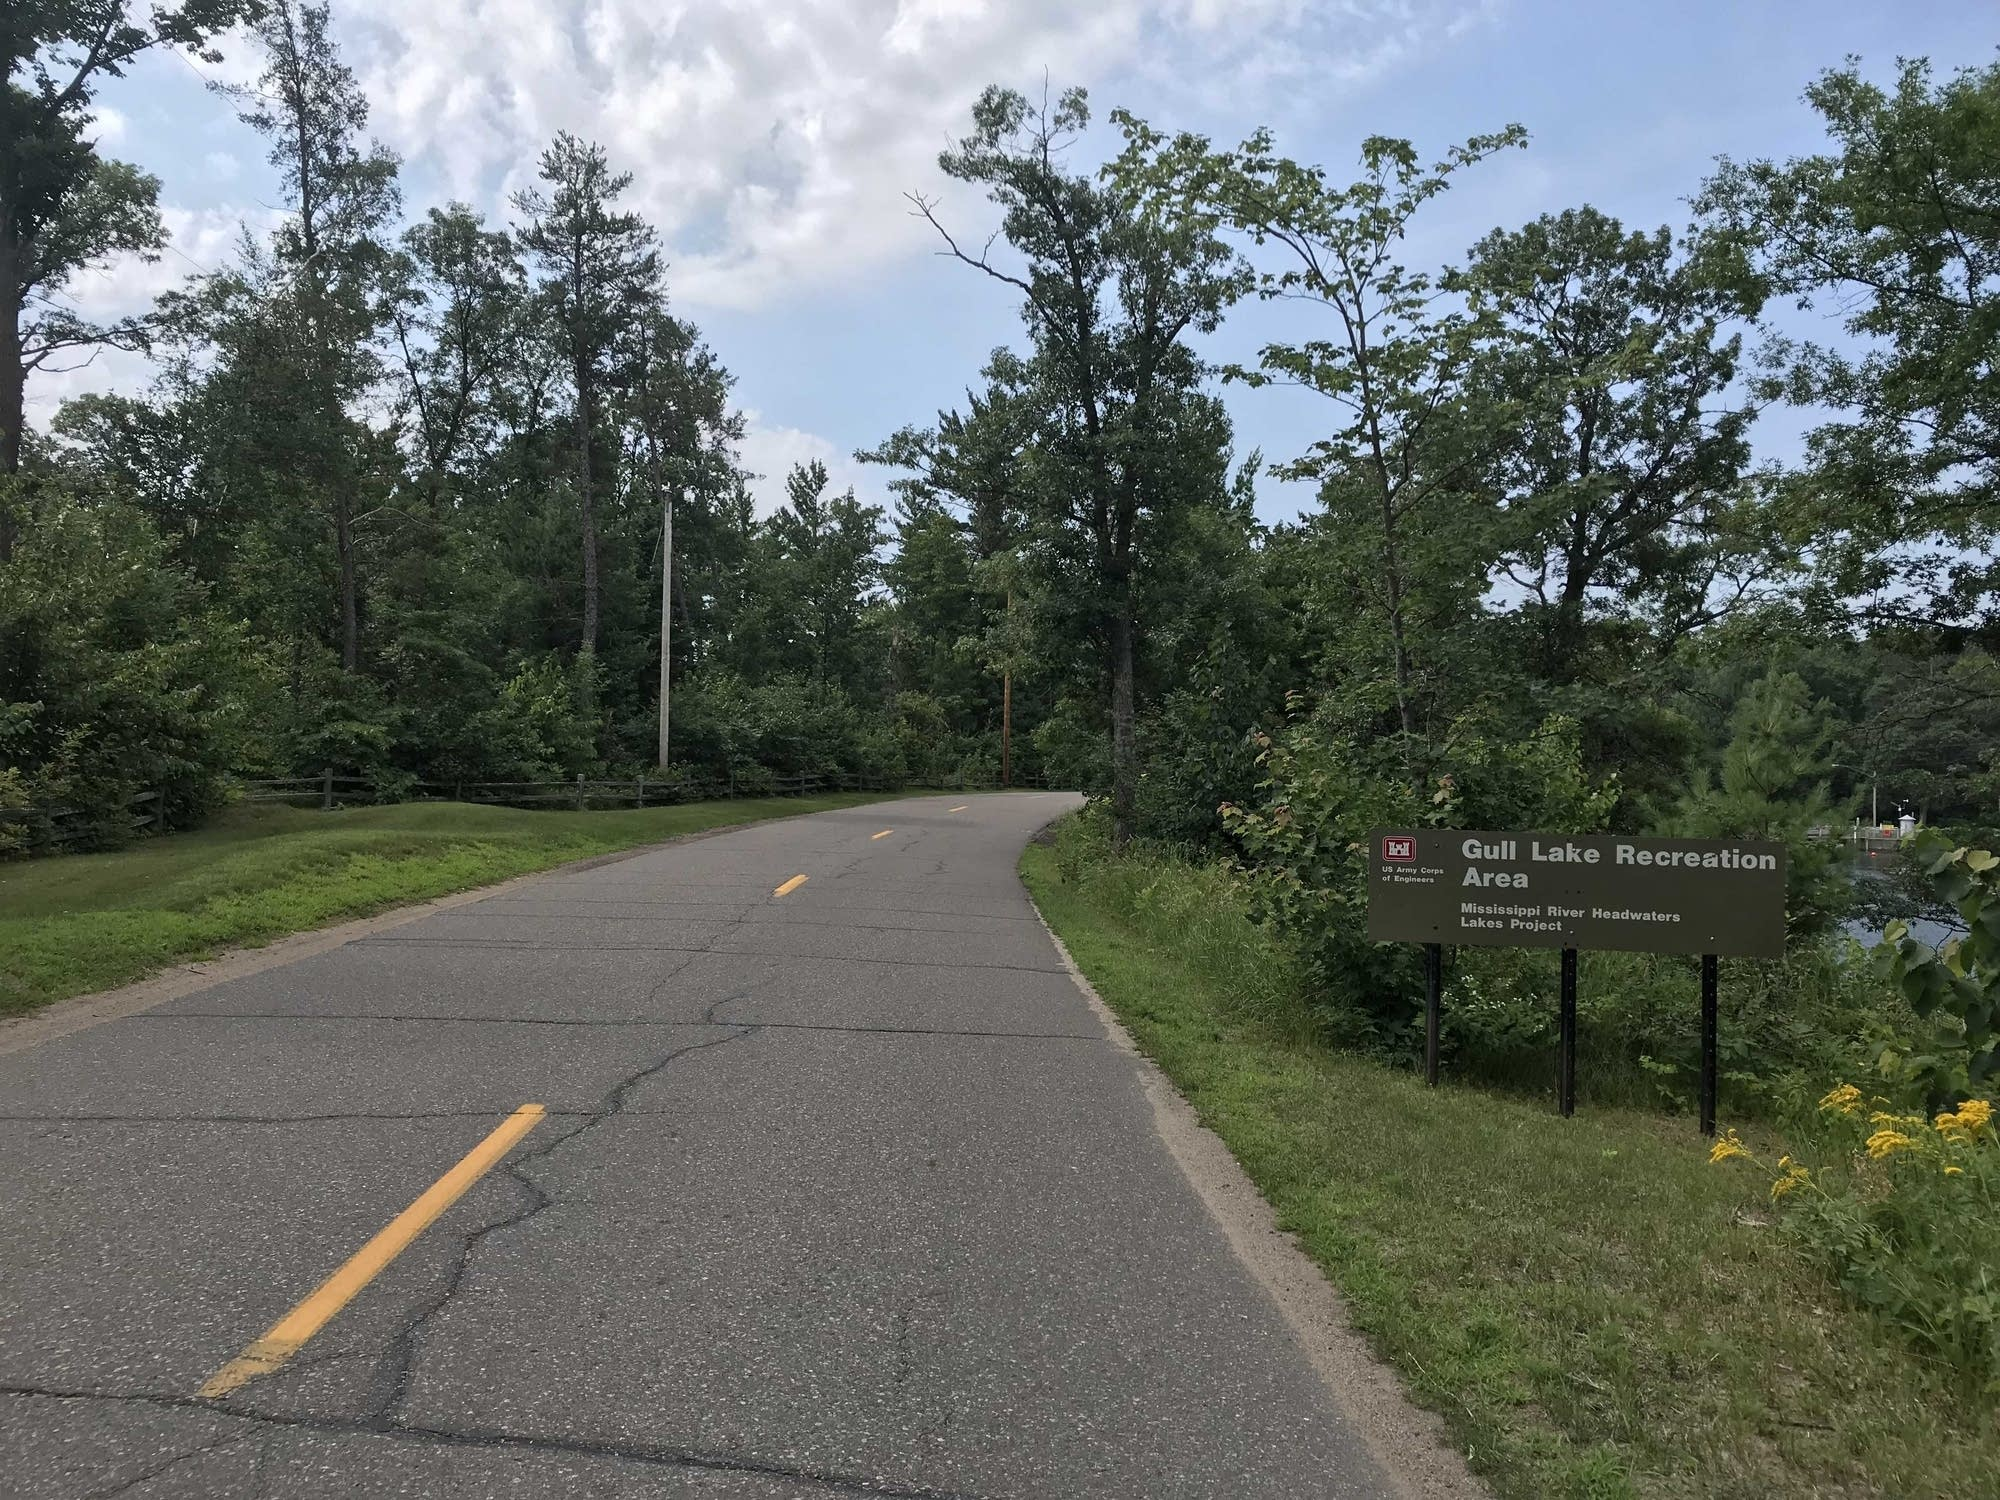 A stretch of road next to a Native American burial ground near Gull Lake